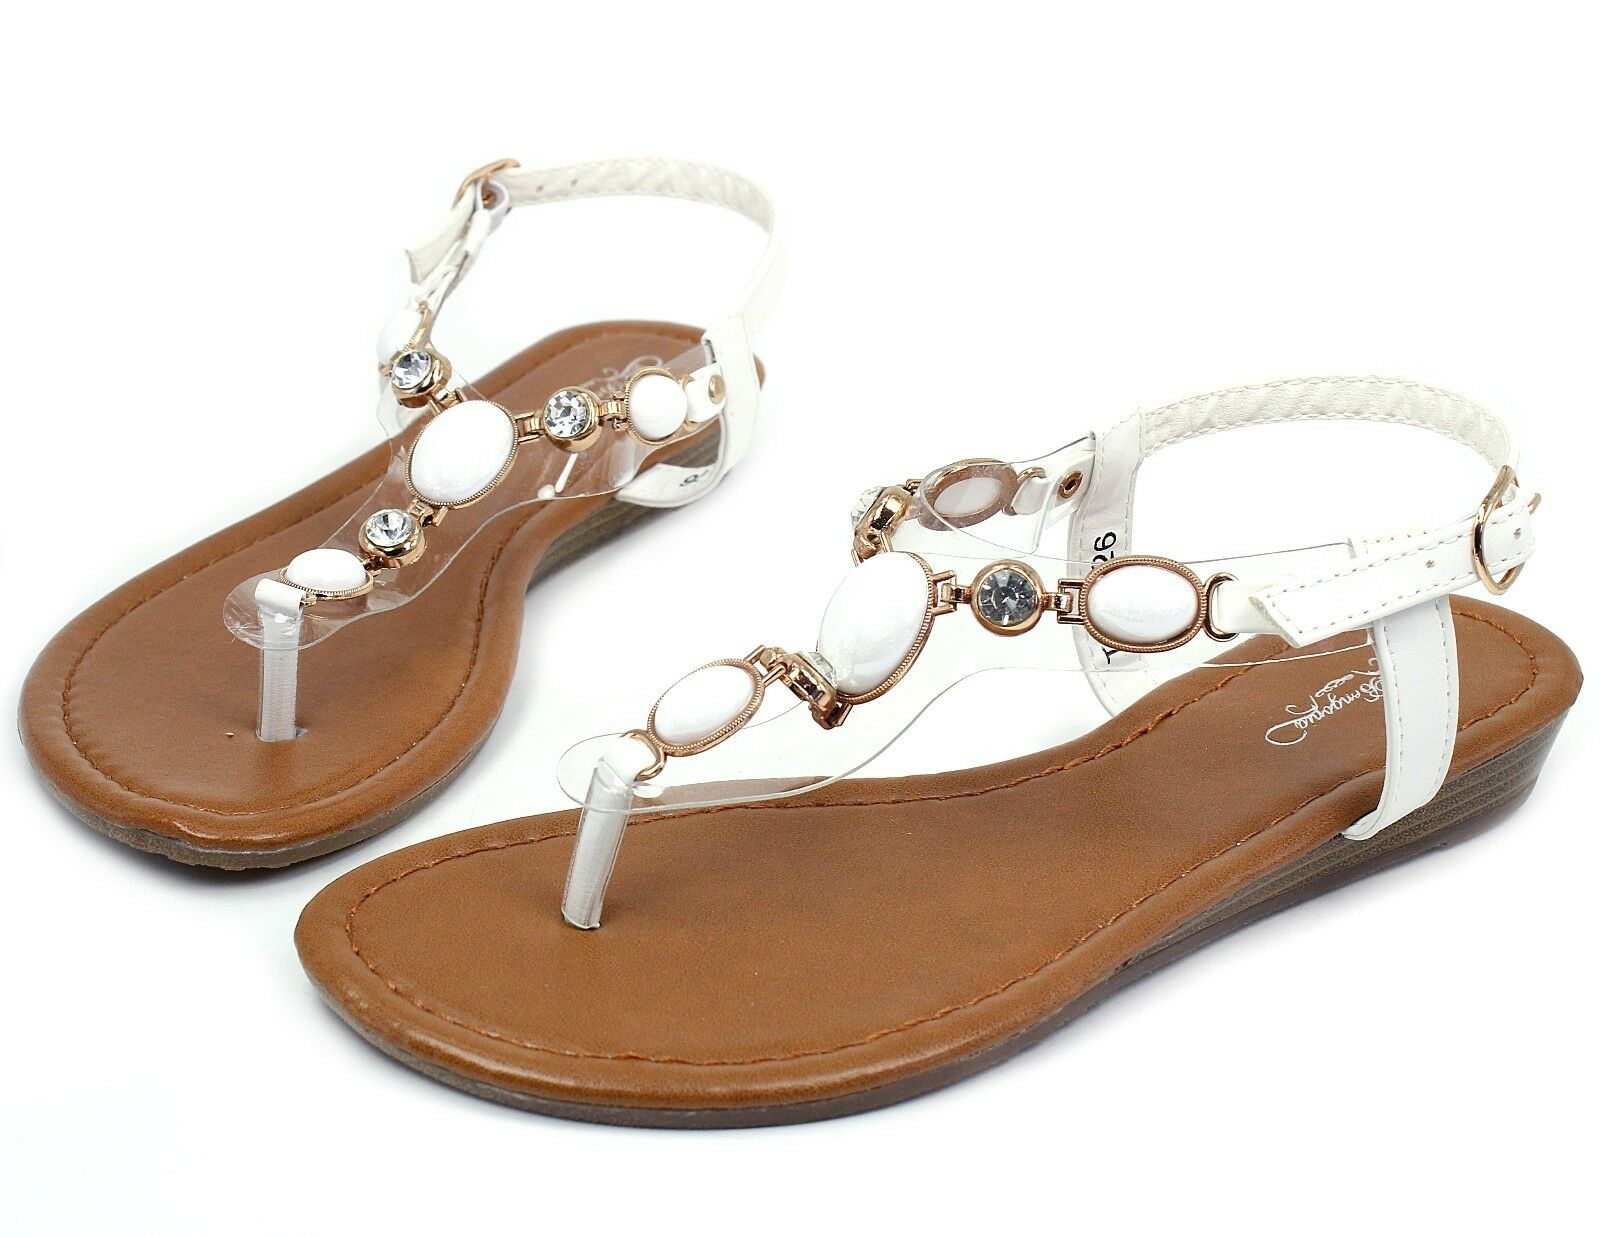 THW-26 New Sandals Gladiator Buckle Low Heel Sandals New Casual Women Shoes White 8 32f8c2